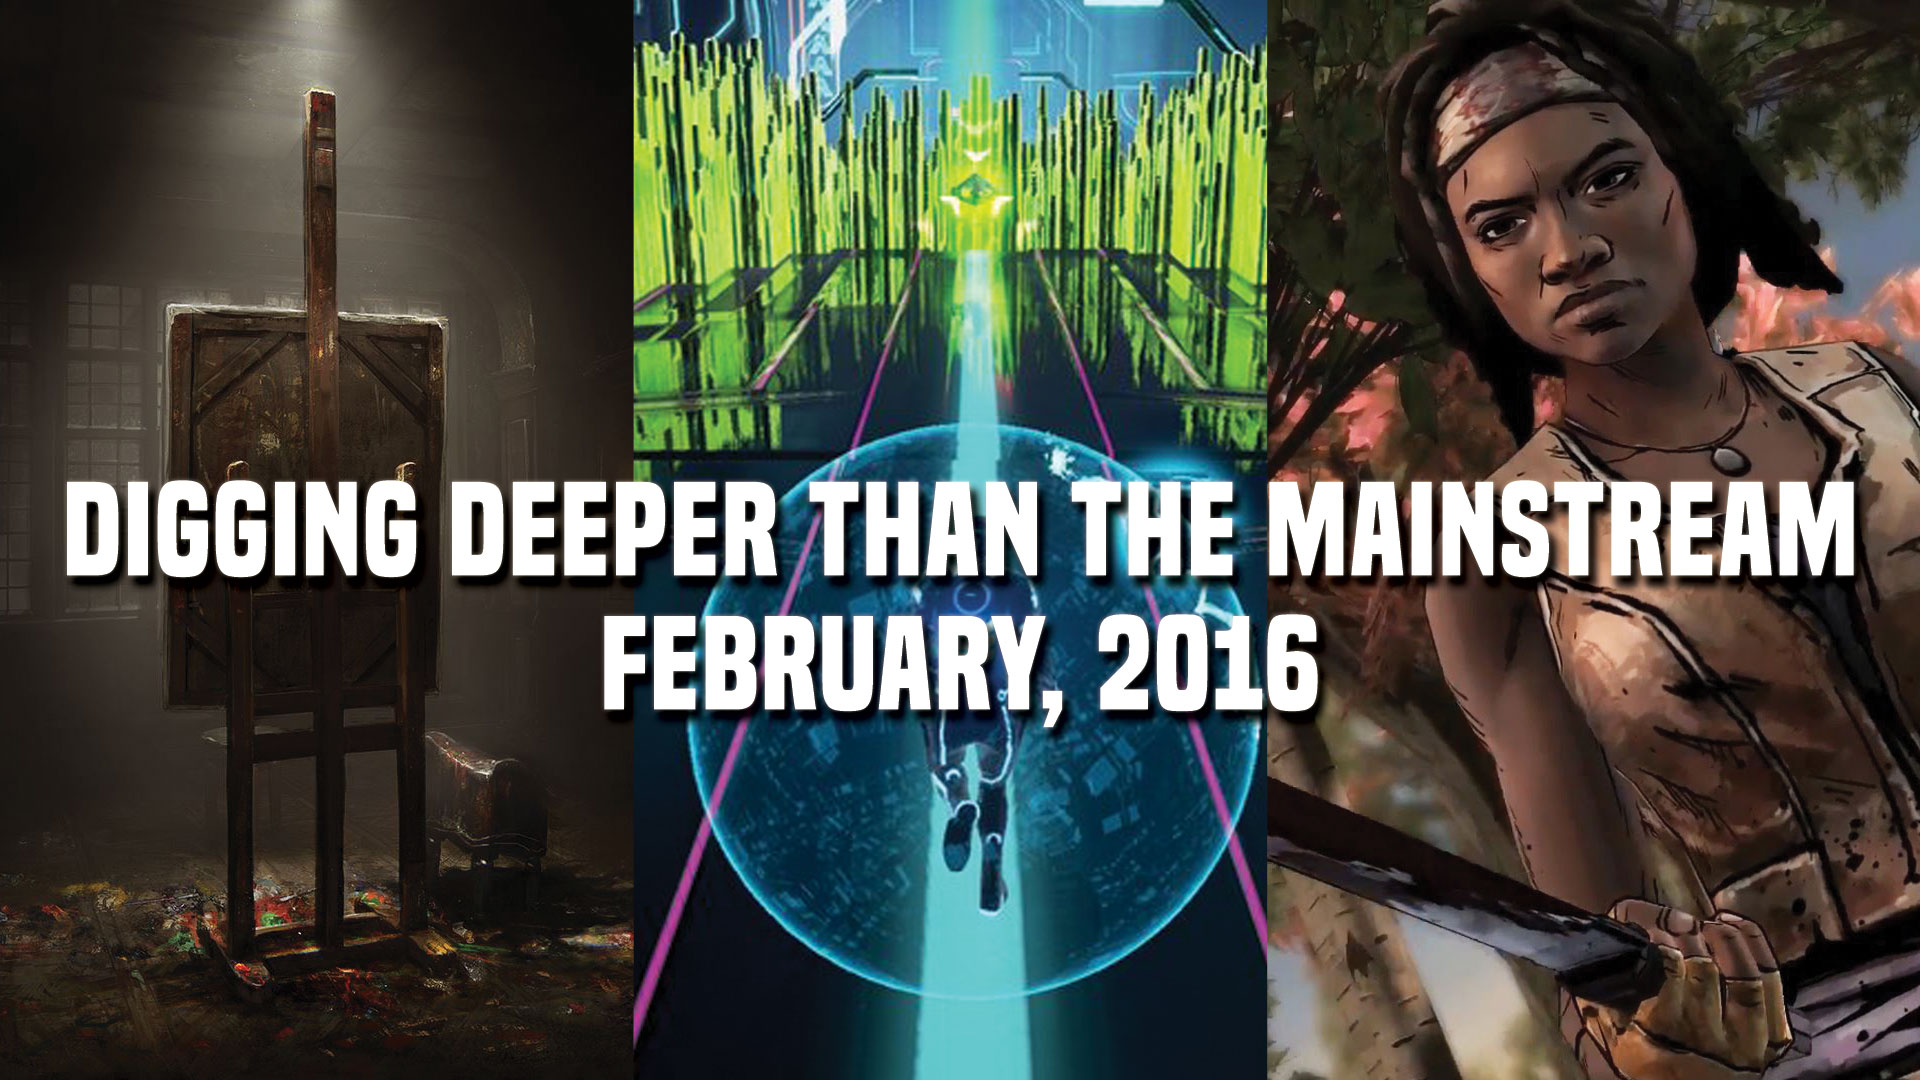 Digging Deeper Than the Mainstream - February, 2016